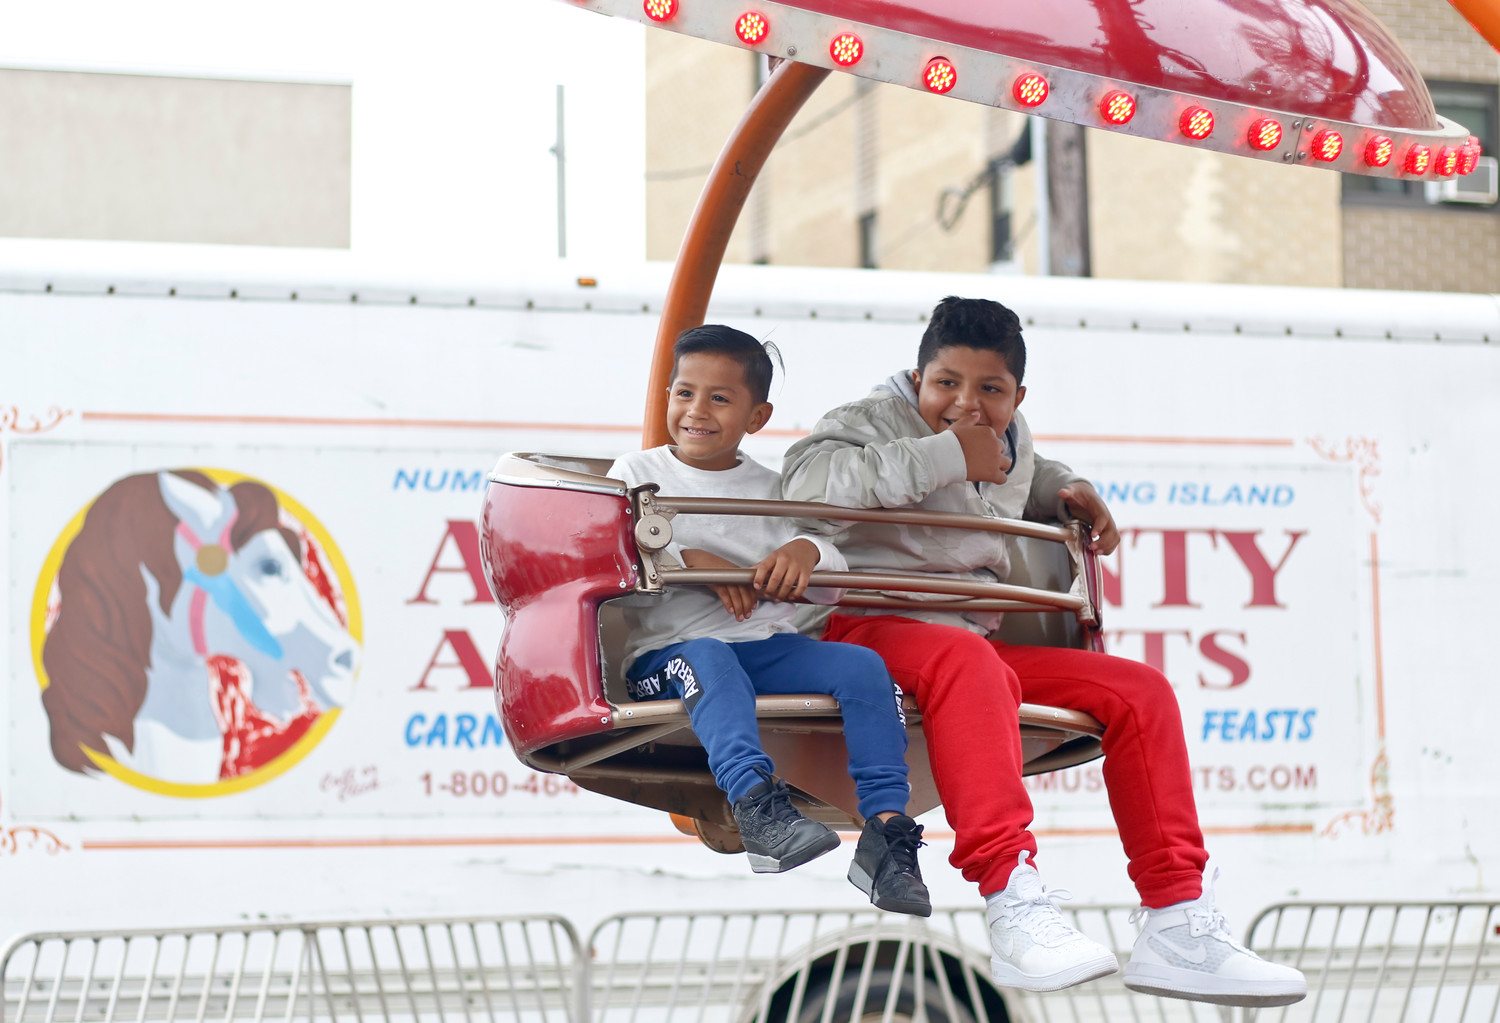 Brothers William Carballo, 5, and Freddy Rivera, 11, rode the flying saucer ride at the city's annual Fall Festival in Kennedy Plaza on Saturday.